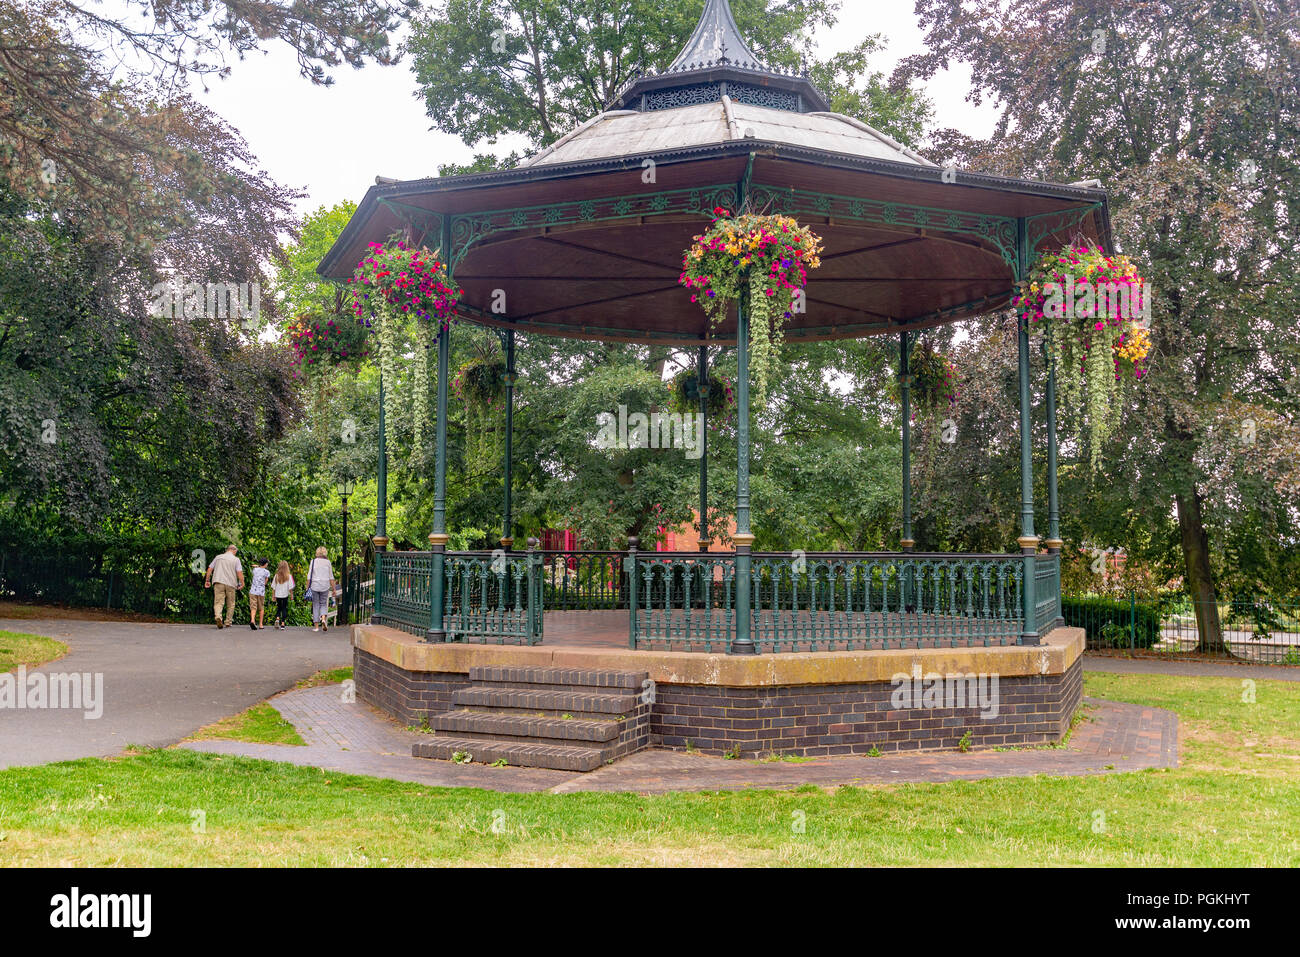 Hanging baskets decorating a bandstand in a park in Great Malvern, Worcestershire, England, UK - Stock Image